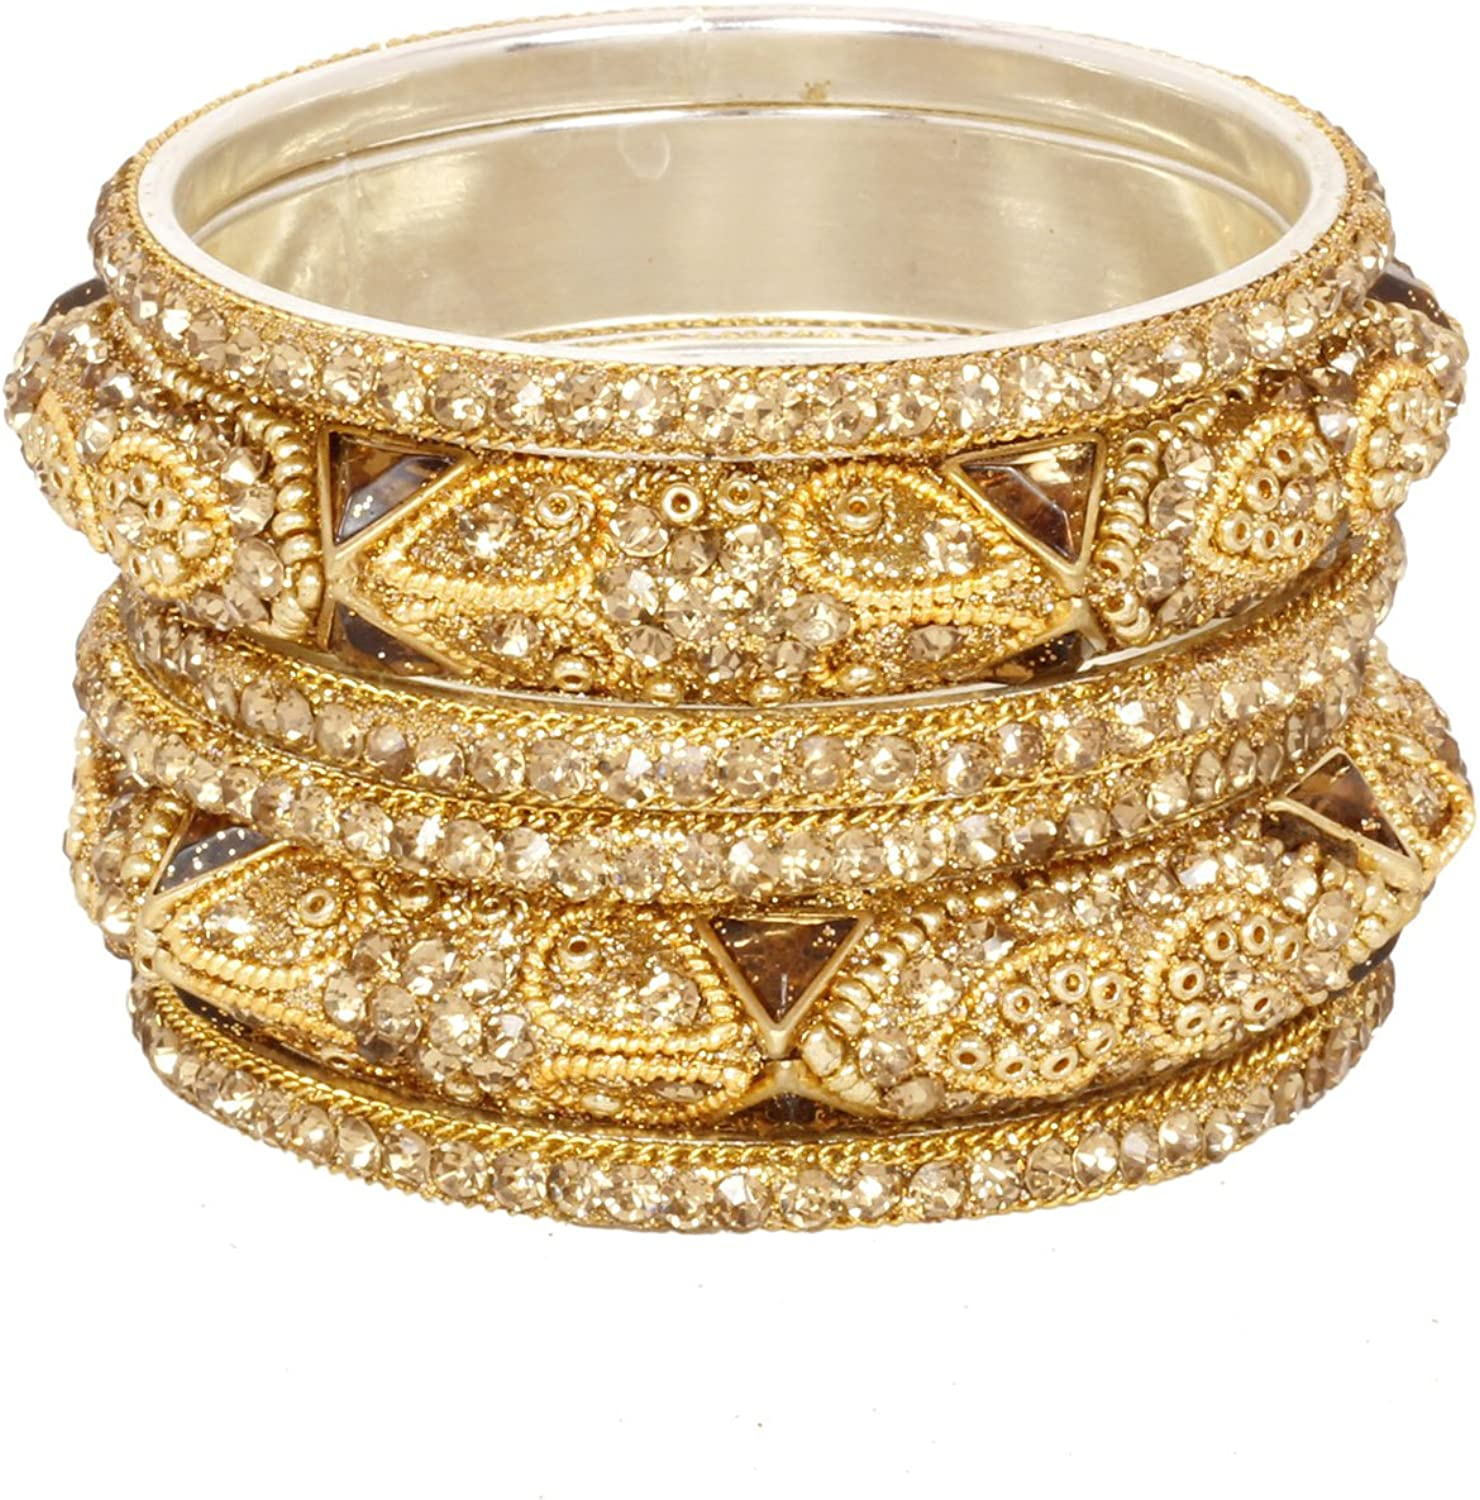 Sukh Collection Jewellery Bollywood Shinning Partywear Ethnic Golden Crystal Lac Stone 6pc Bangle Bracelet Traditional Wedding Kada Bangles For Women Indian DesignerJewelry